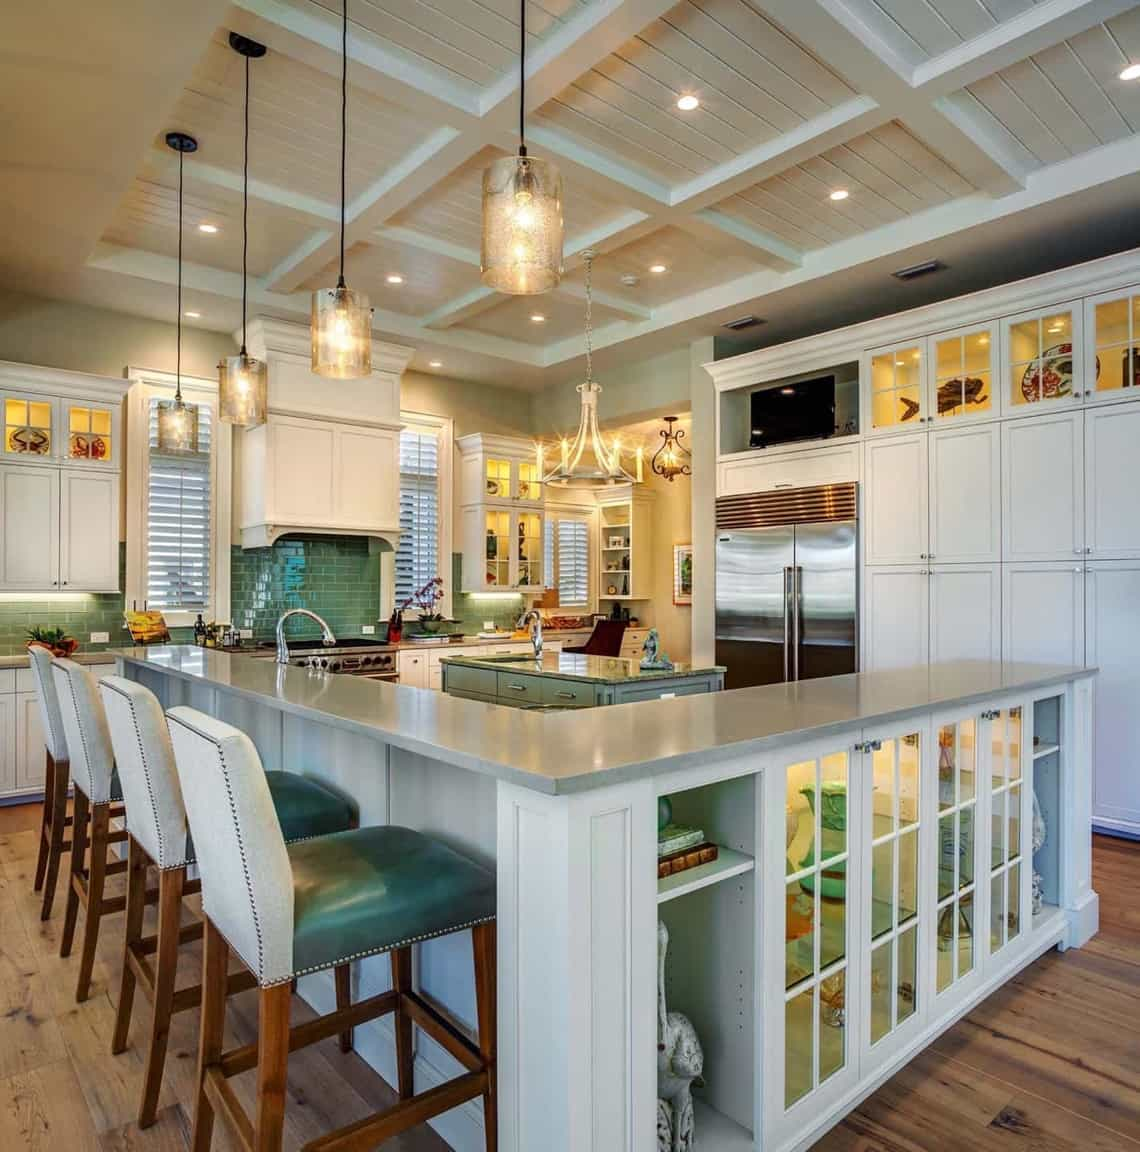 Featured Image of Coastal Kitchen With L Shaped Breakfast Bar And Teal  Accents